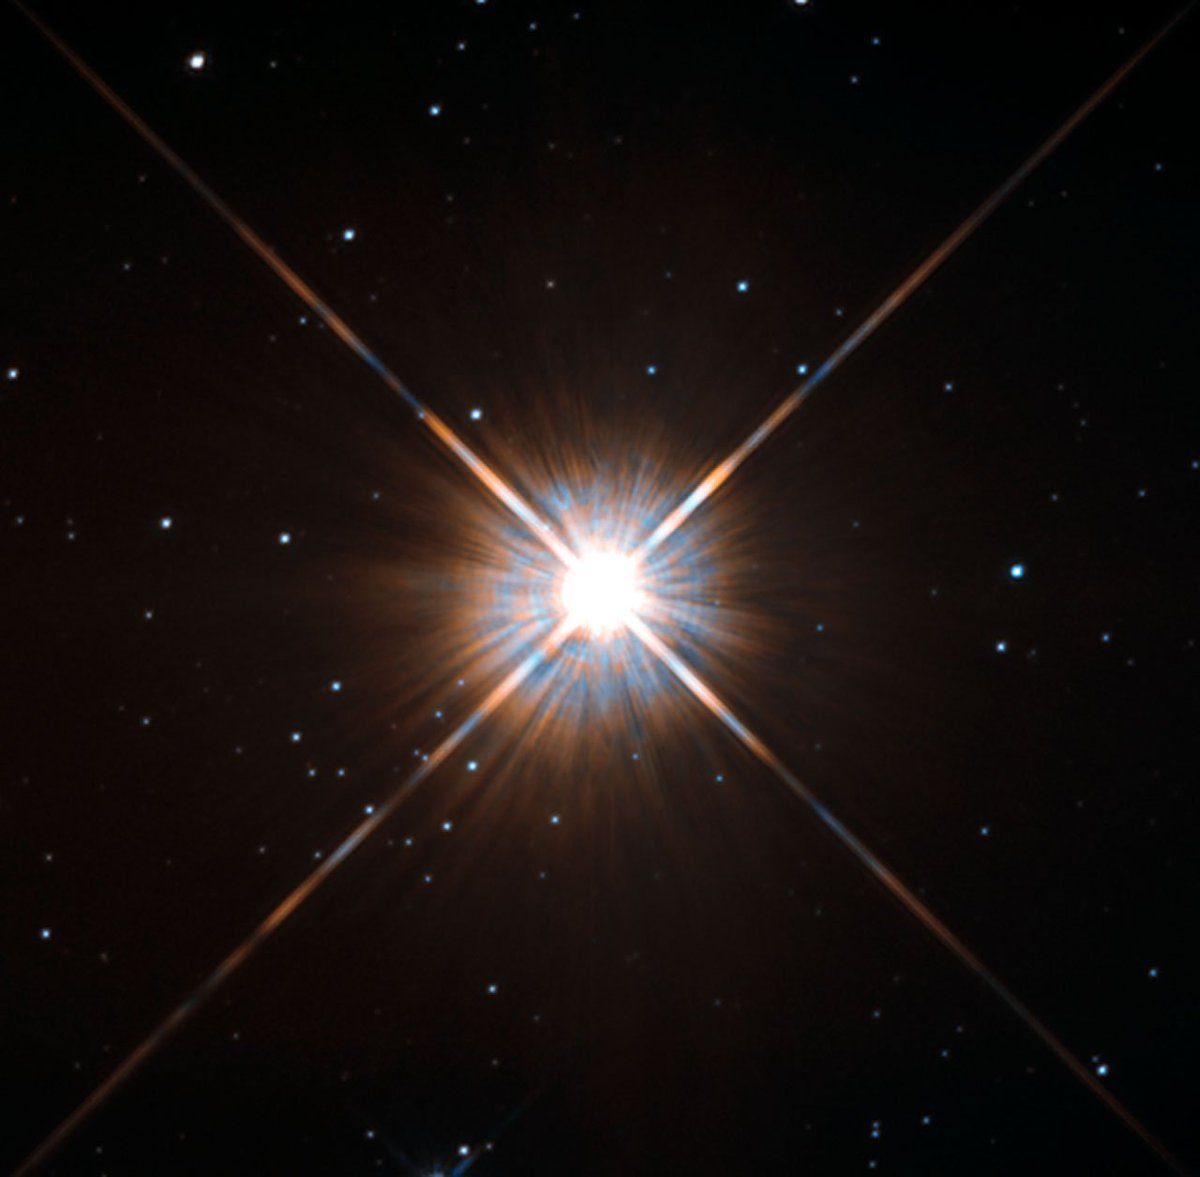 #ProximaB receives 60 times more X&amp;UV irradiance than #Earth, according a very recent work by Ignasi Ribas team  http:// bit.ly/2pdT6uT  &nbsp;  <br>http://pic.twitter.com/96q4ObeJs3